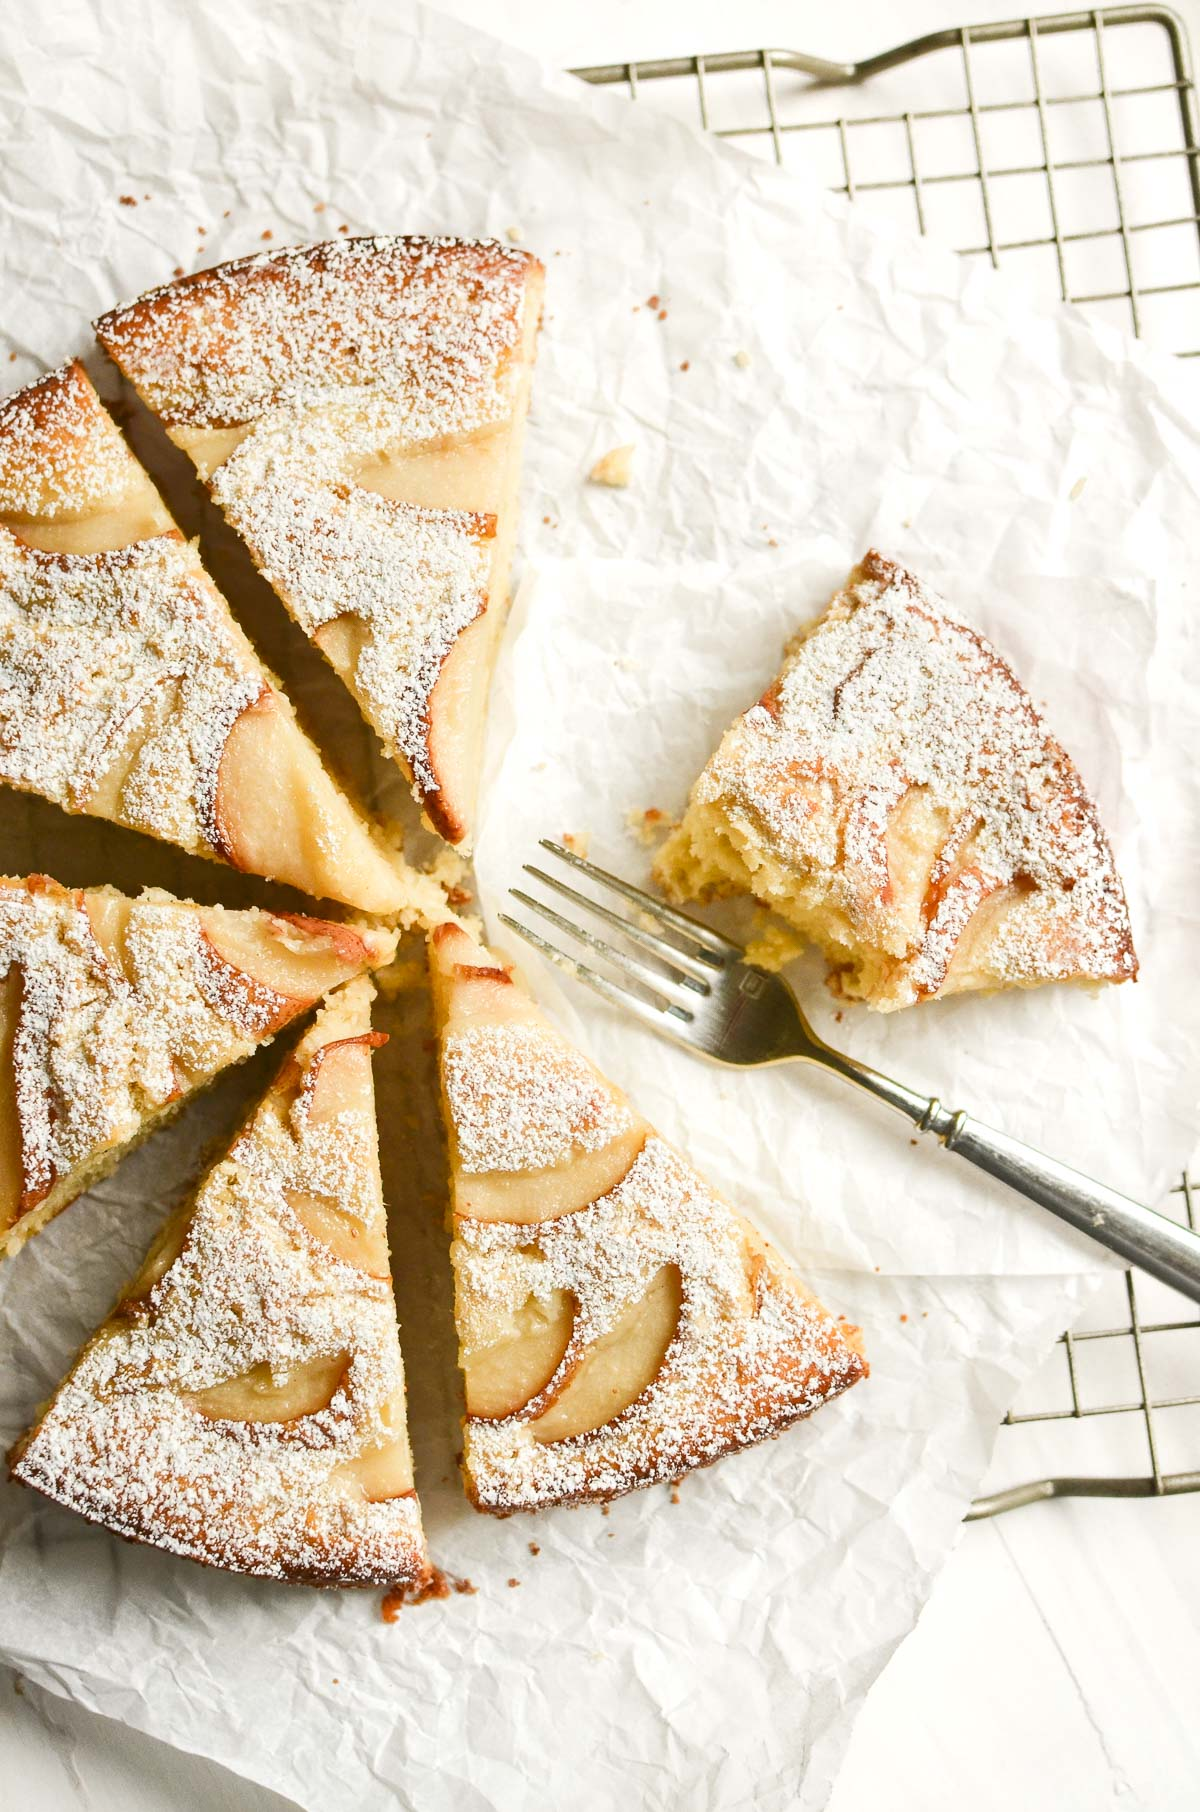 Fresh Ginger and Pear Cake on a baking rack, sliced into pieces.